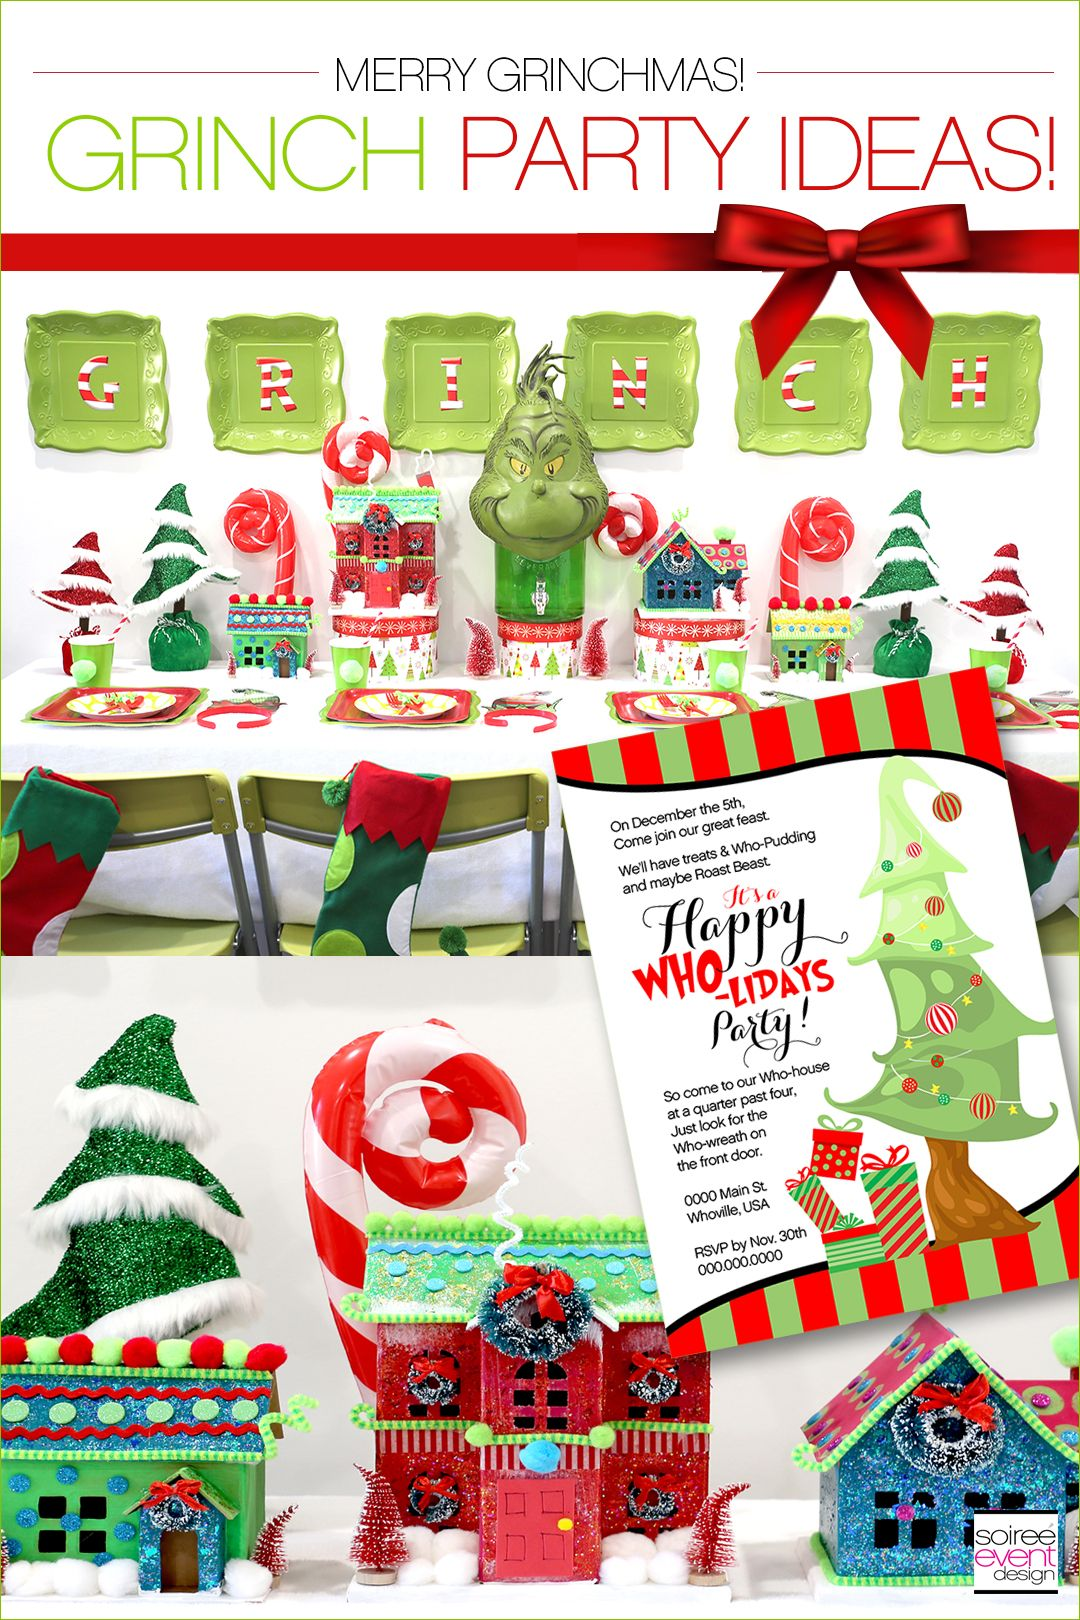 Grinch Party Ideas Grinch Party Classroom Christmas Party Grinch Christmas Party